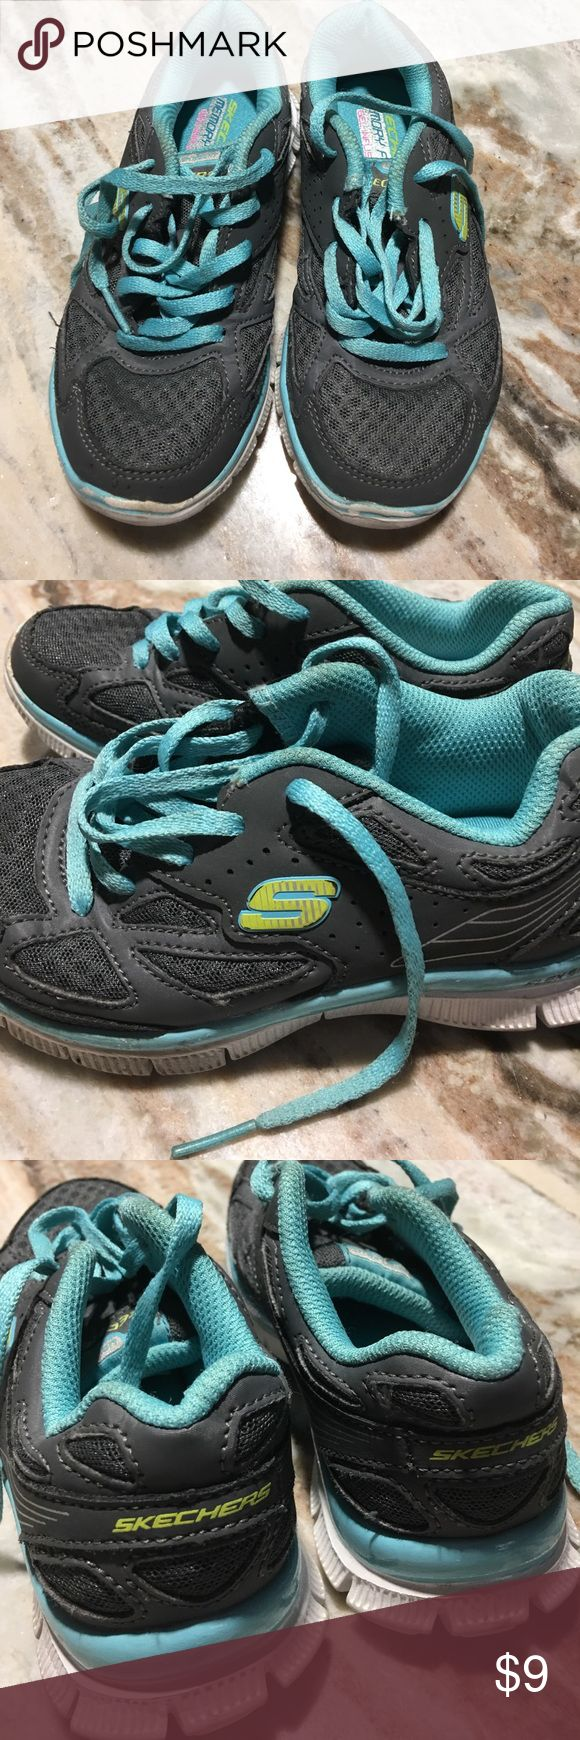 Skechers sneakers size 12 I have for sale a used pair of Skechers  sneakers- size 12. Skechers Shoes Sneakers